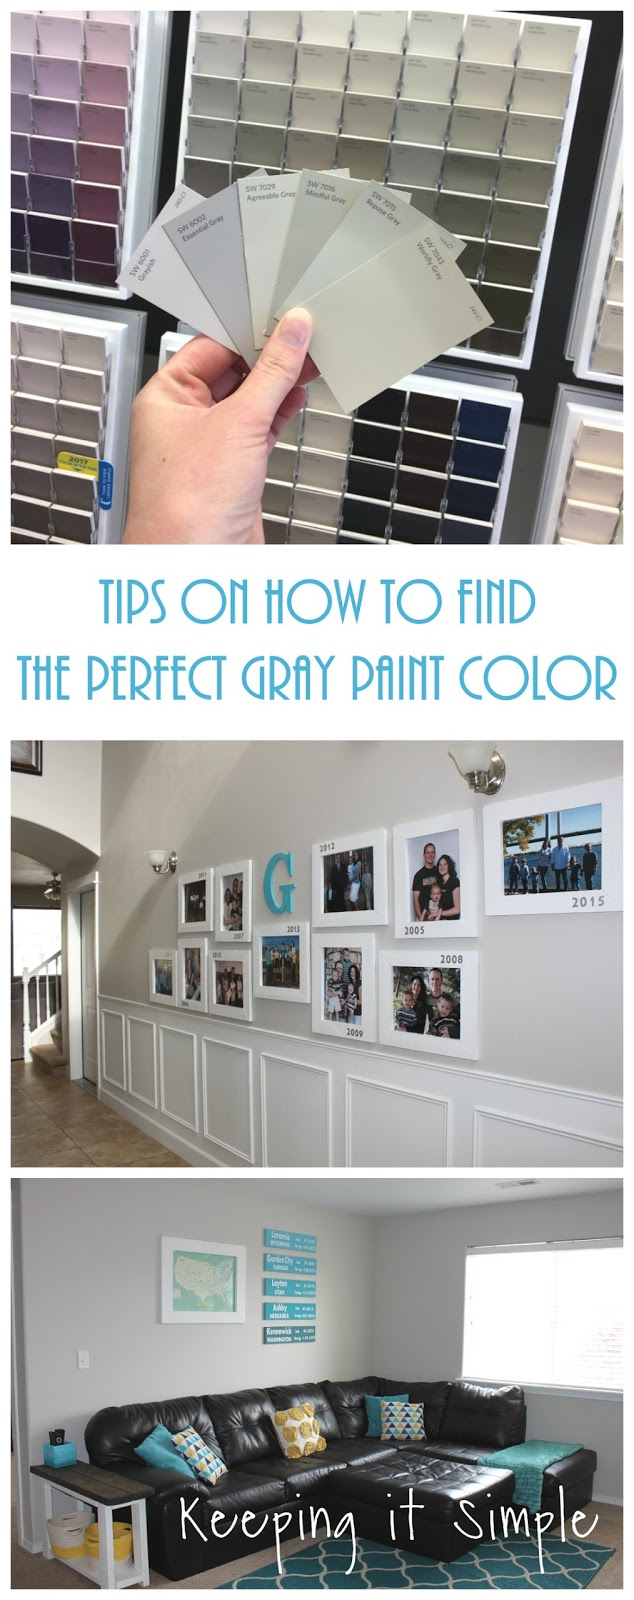 Find Perfect Nail Shapes For Girls Fashion Tips: Tips On How To Find The Perfect Gray Paint Color From